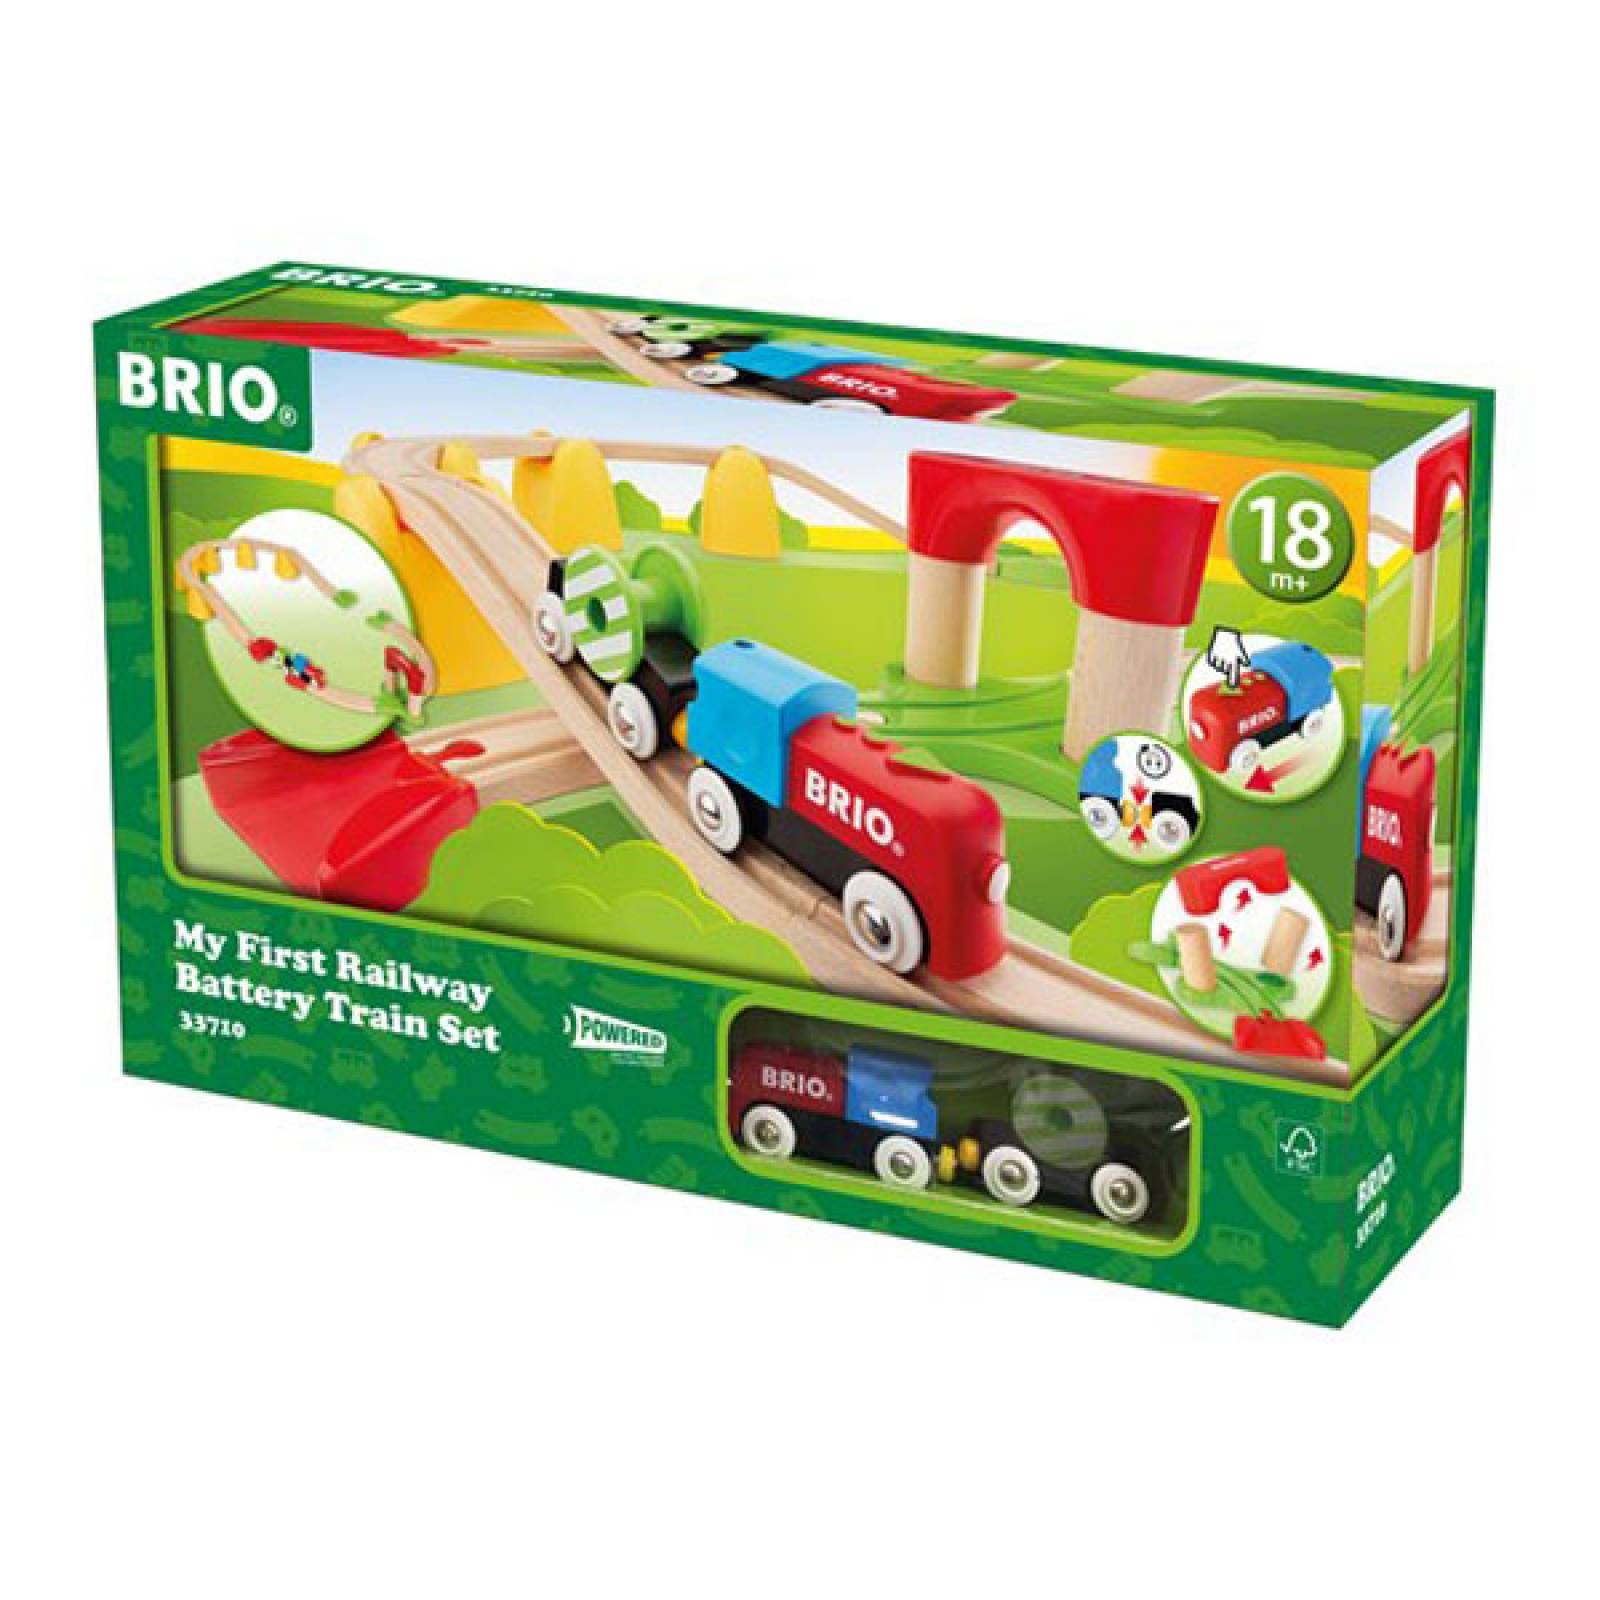 My First Railway Battery Train Set BRIO Wooden Railway Age 1.5+ thumbnails